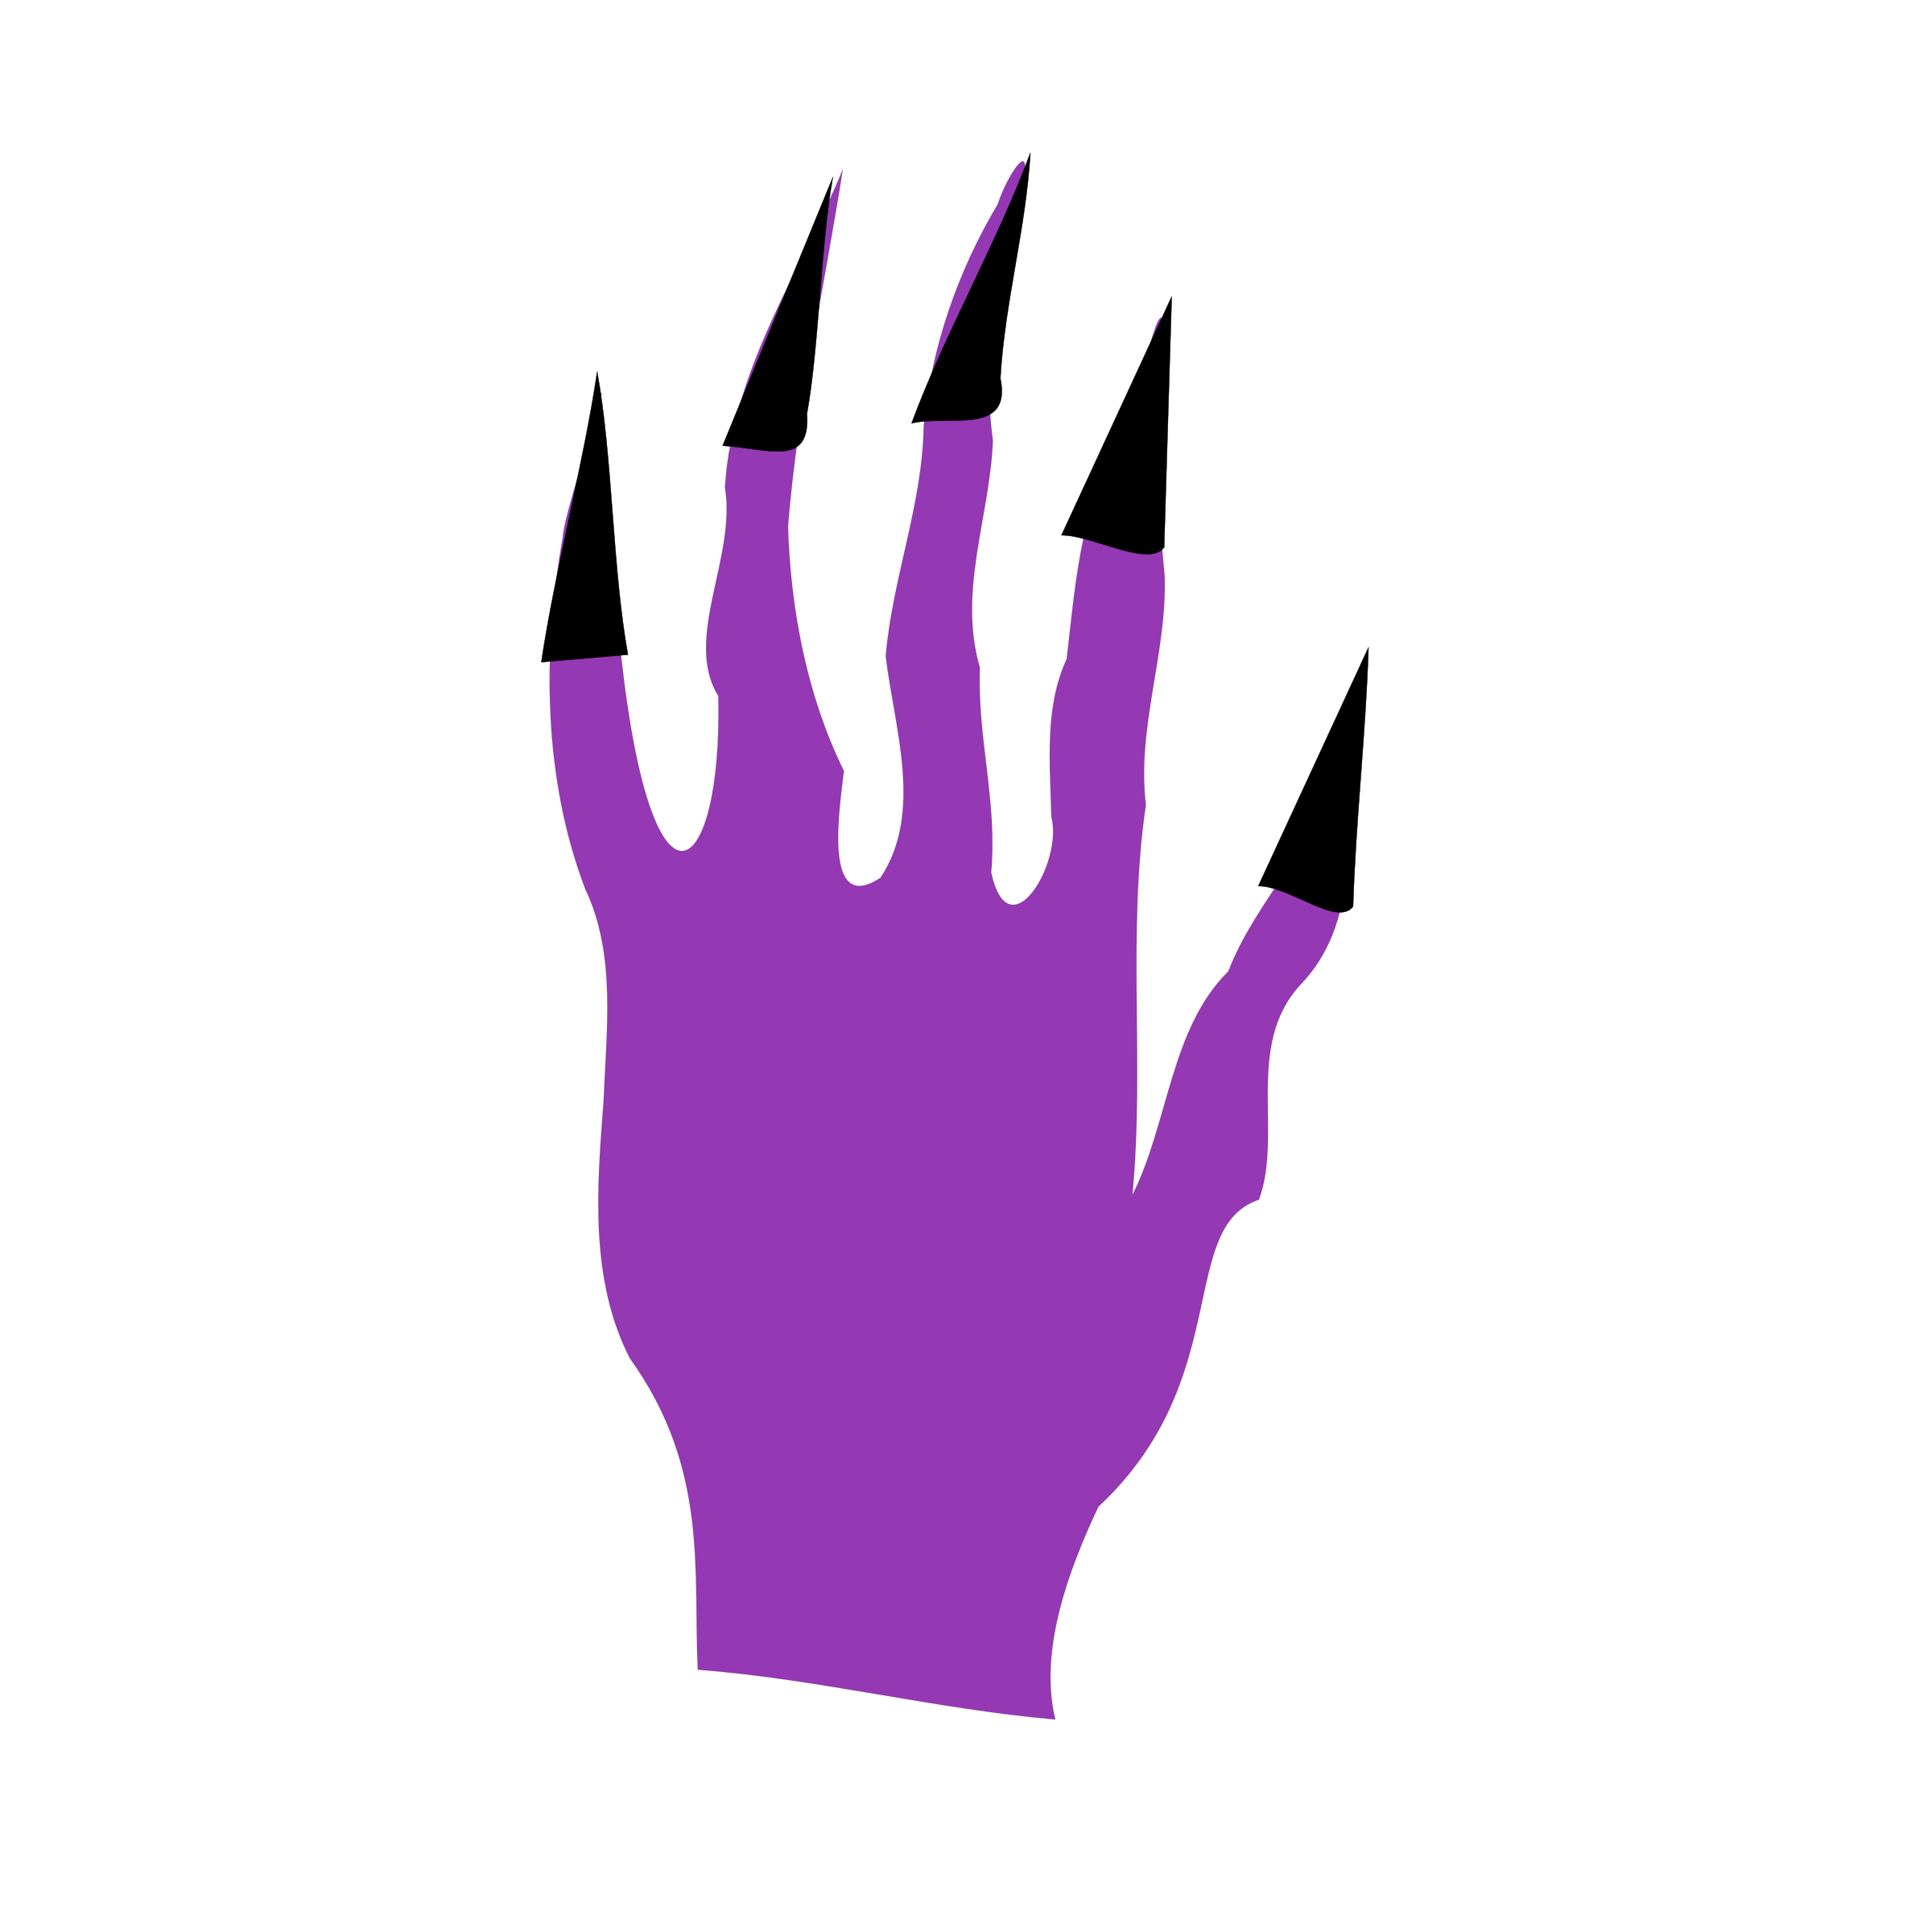 Nails big image png. Clipart halloween purple